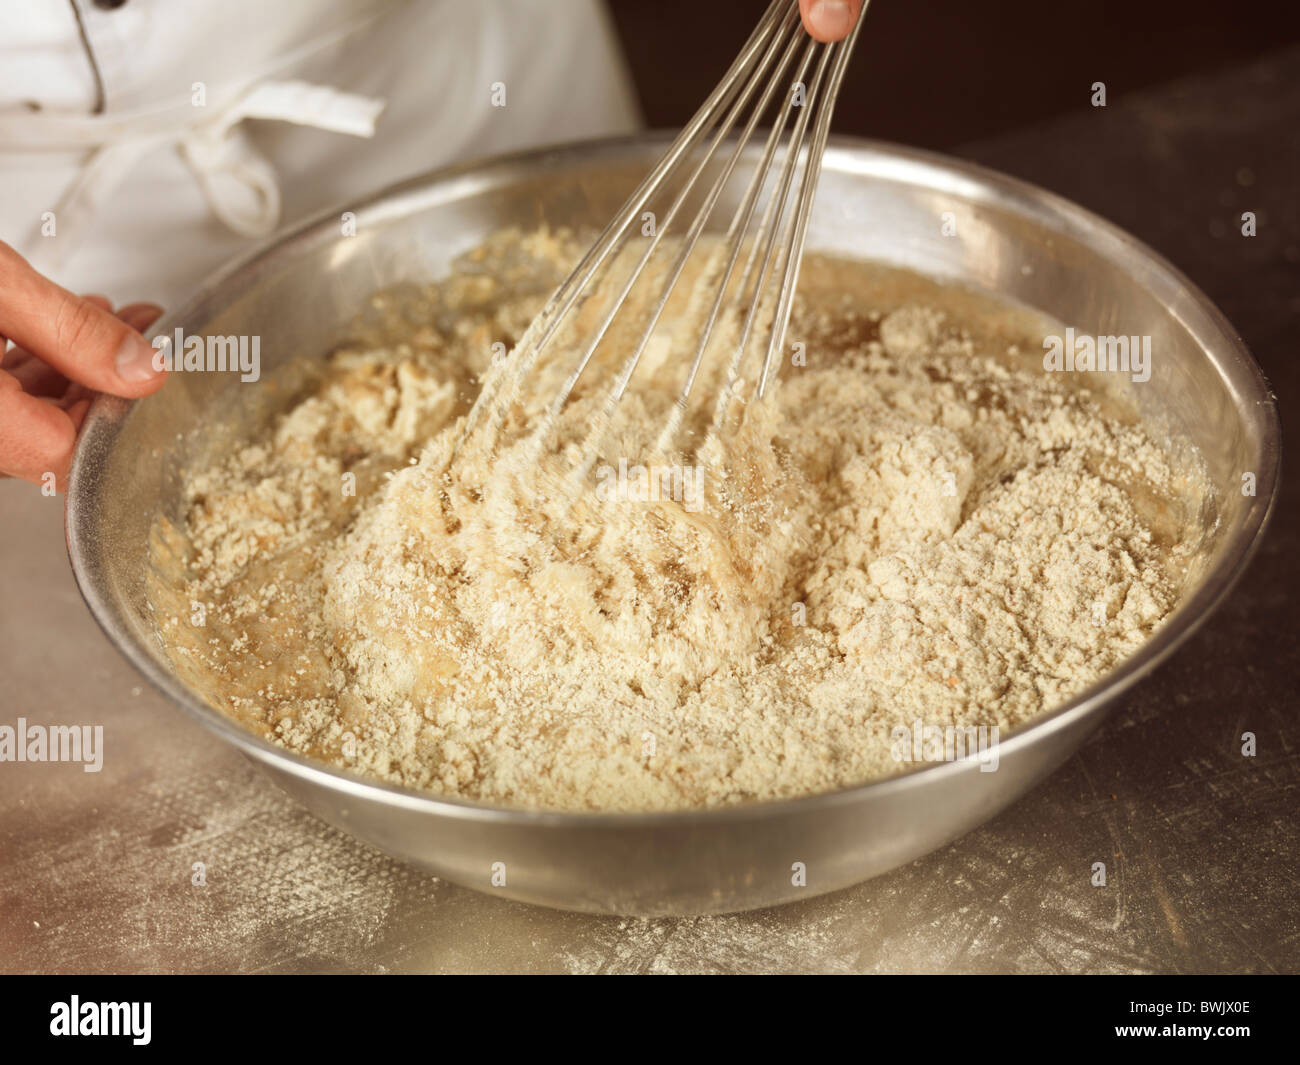 Closeup of baker's hands whisking batter with spelt flour in a bowl Stock Photo